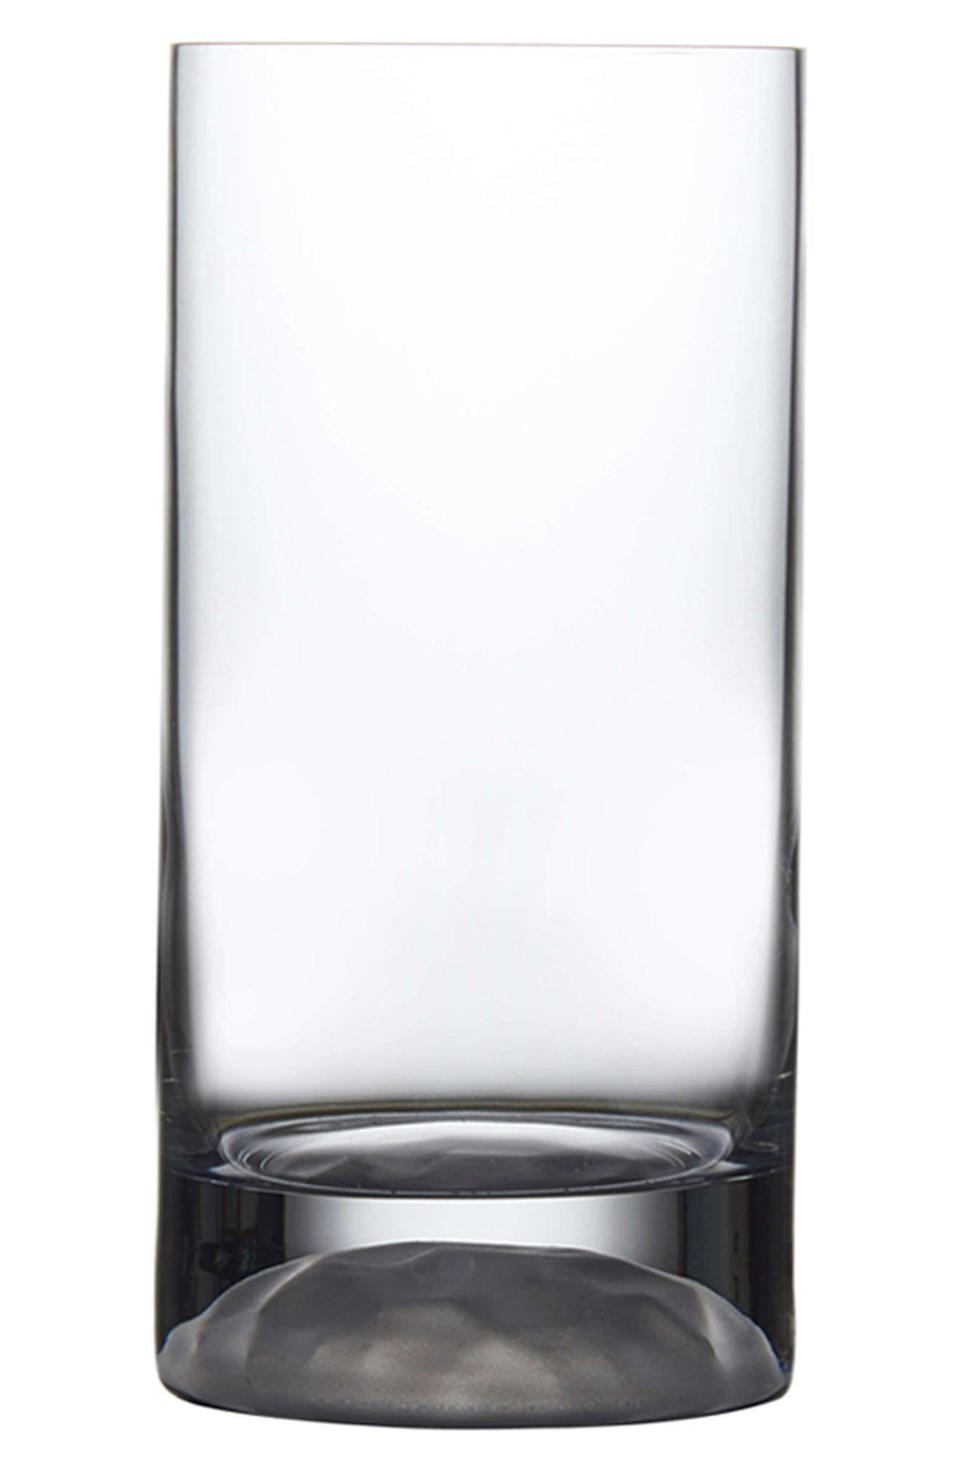 """<p><strong>NUDE GLASS</strong></p><p>nordstrom.com</p><p><strong>$50.00</strong></p><p><a href=""""https://go.redirectingat.com?id=74968X1596630&url=https%3A%2F%2Fwww.nordstrom.com%2Fs%2Fnude-club-ice-set-of-4-medium-highball-glasses%2F5480276&sref=https%3A%2F%2Fwww.townandcountrymag.com%2Fleisure%2Fdrinks%2Fg36491587%2Fcocktail-glasses-types%2F"""" rel=""""nofollow noopener"""" target=""""_blank"""" data-ylk=""""slk:Shop Now"""" class=""""link rapid-noclick-resp"""">Shop Now</a></p><p>From classic highballs to iced tea, the highball glass is a do-it-all workhorse that's as useful in your kitchen cabinet as it is in your bar cart.</p>"""